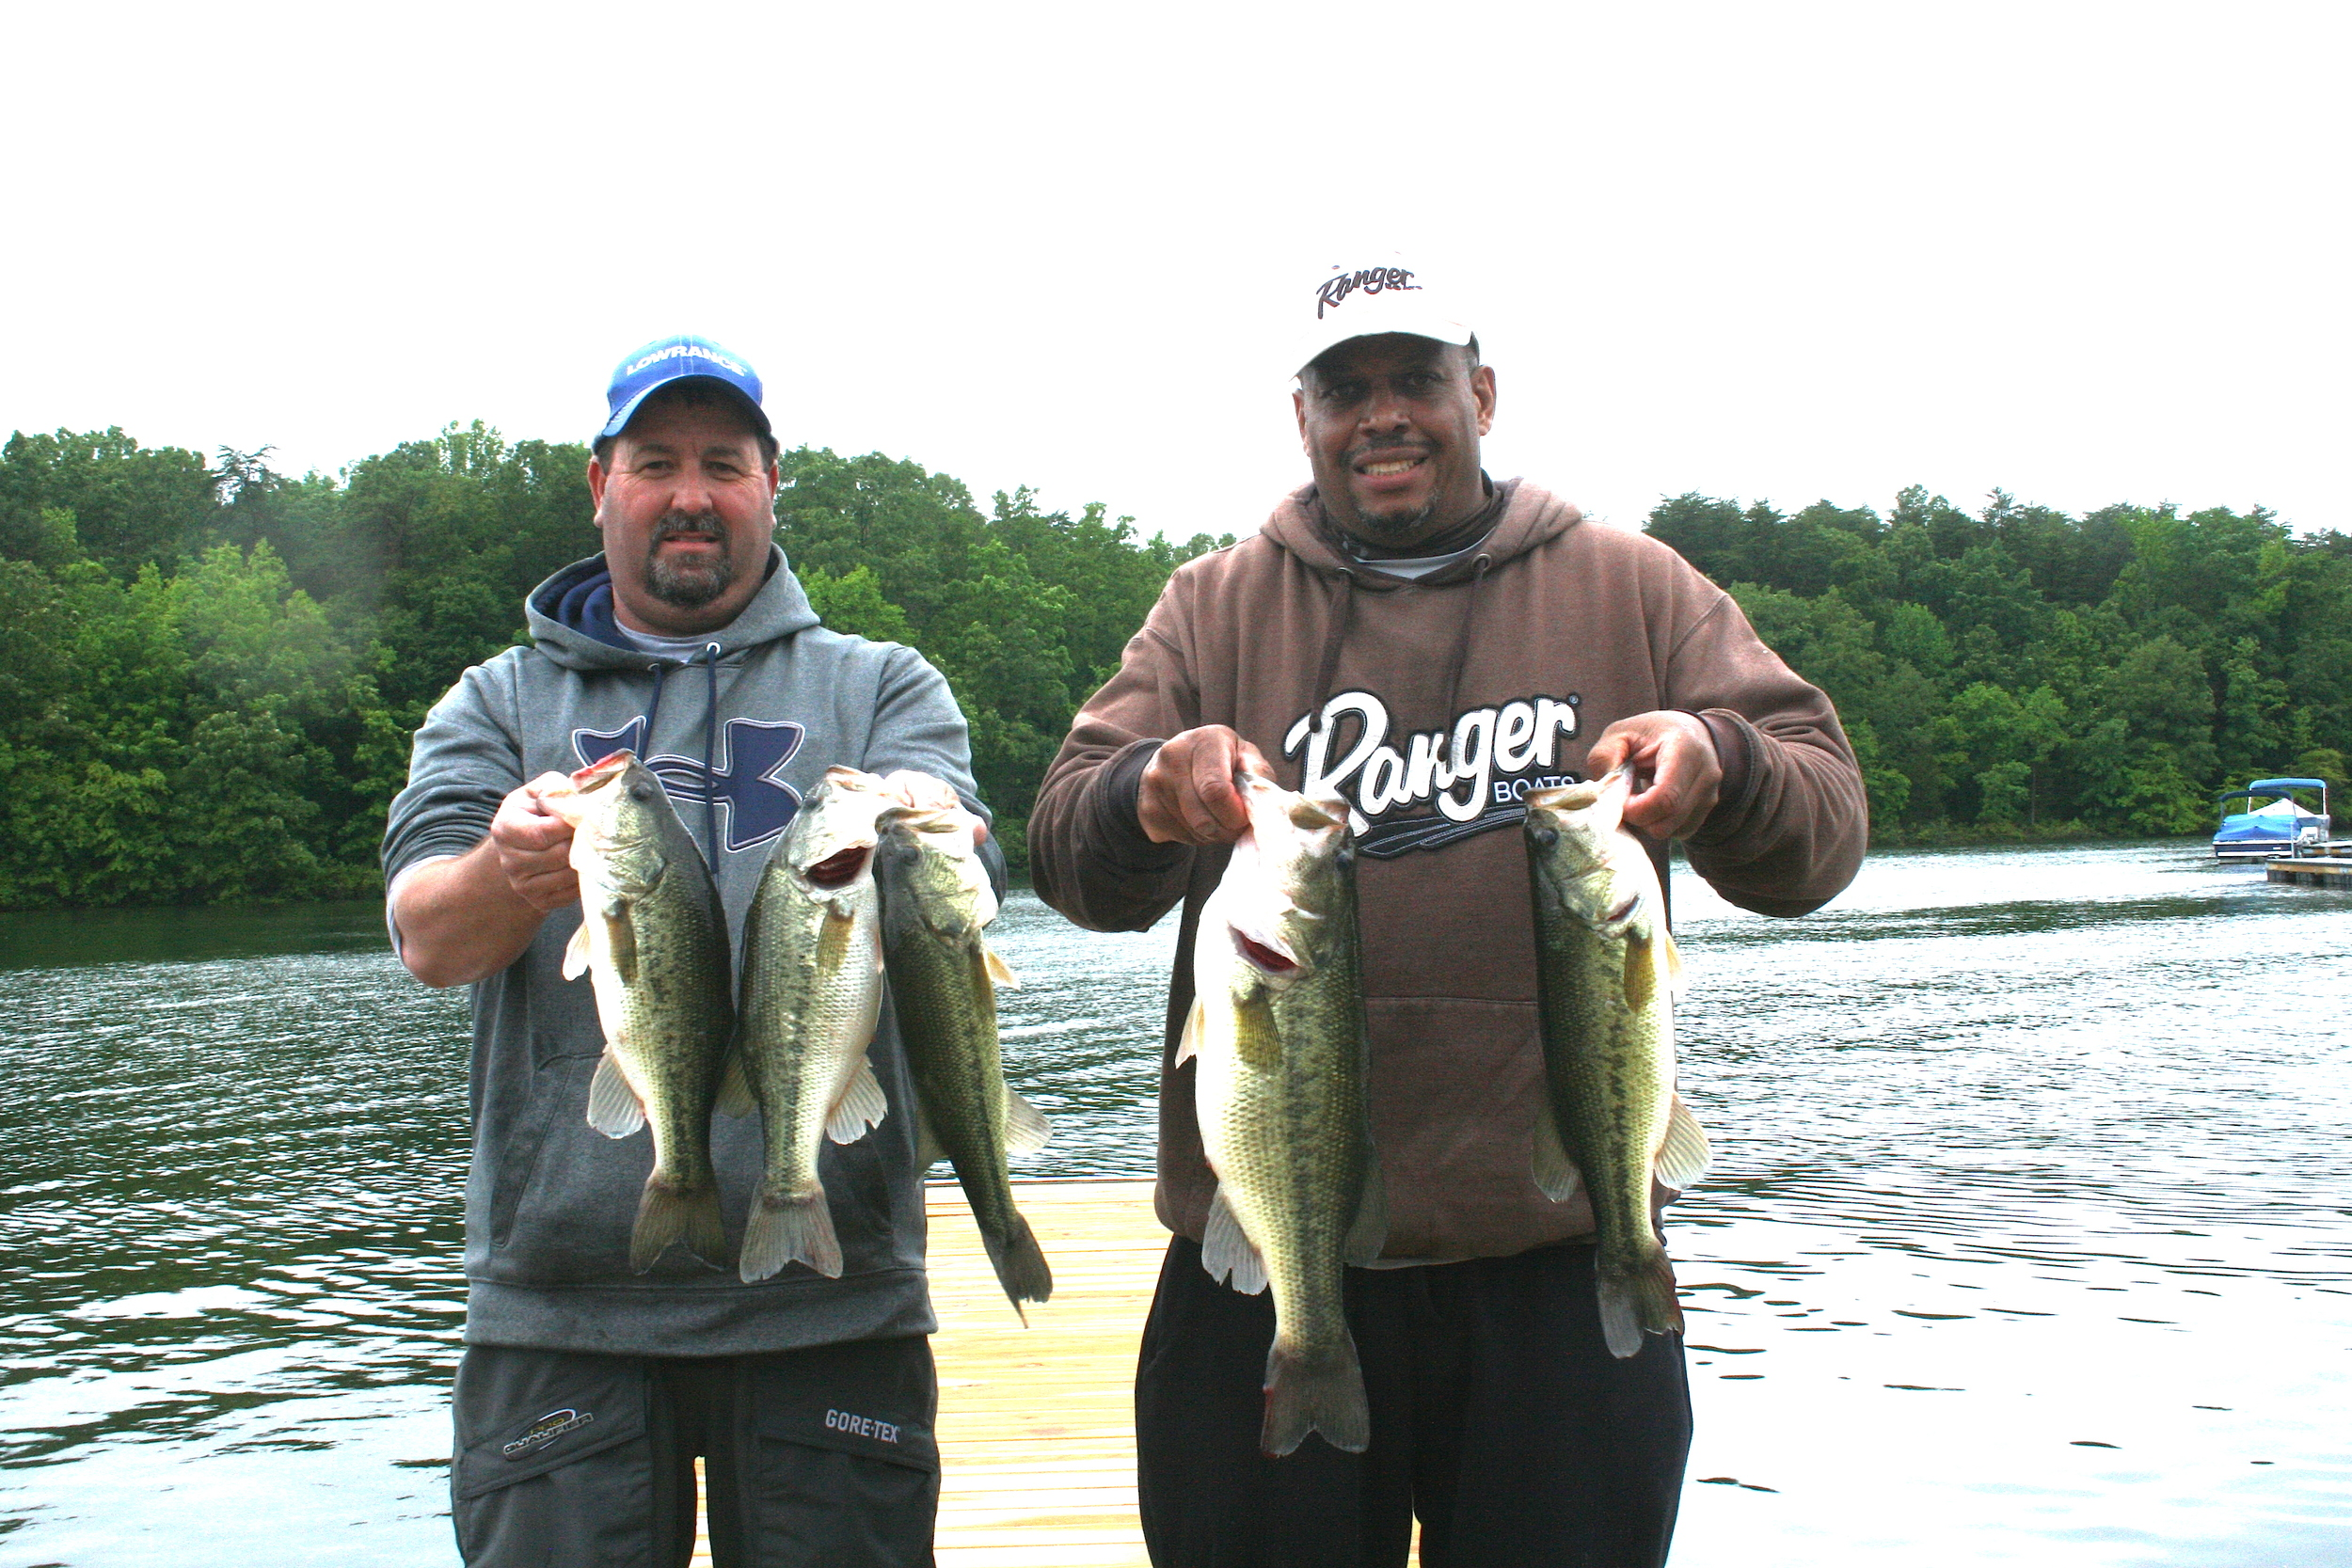 Melvin Bowling and Scott Falls Fourth Place 12.05 lbs